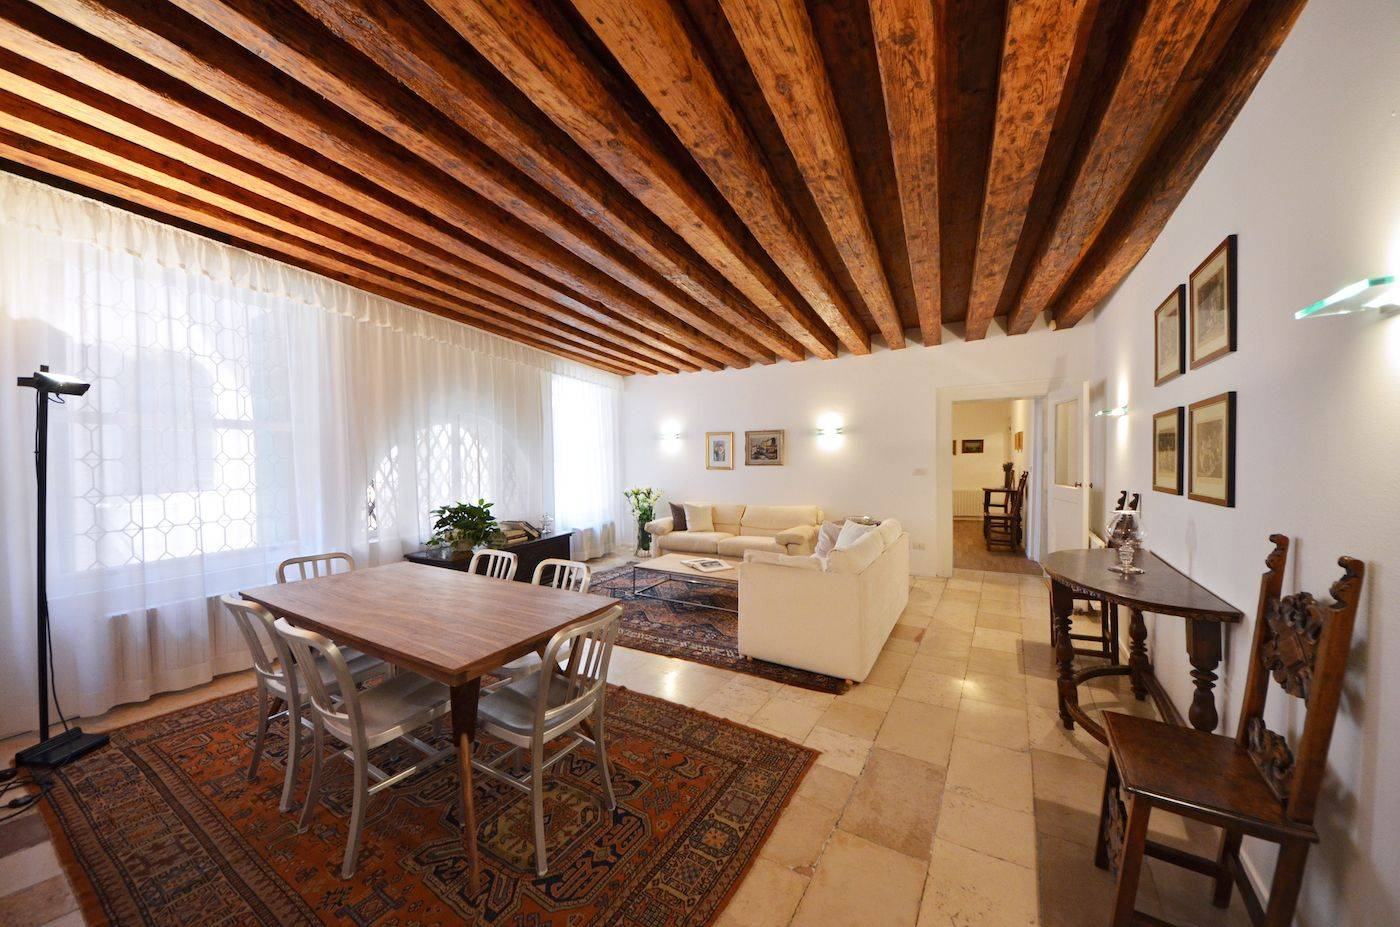 the spacious living room features beautiful wooden beams, antique terracotta flooring, large windows with canal view